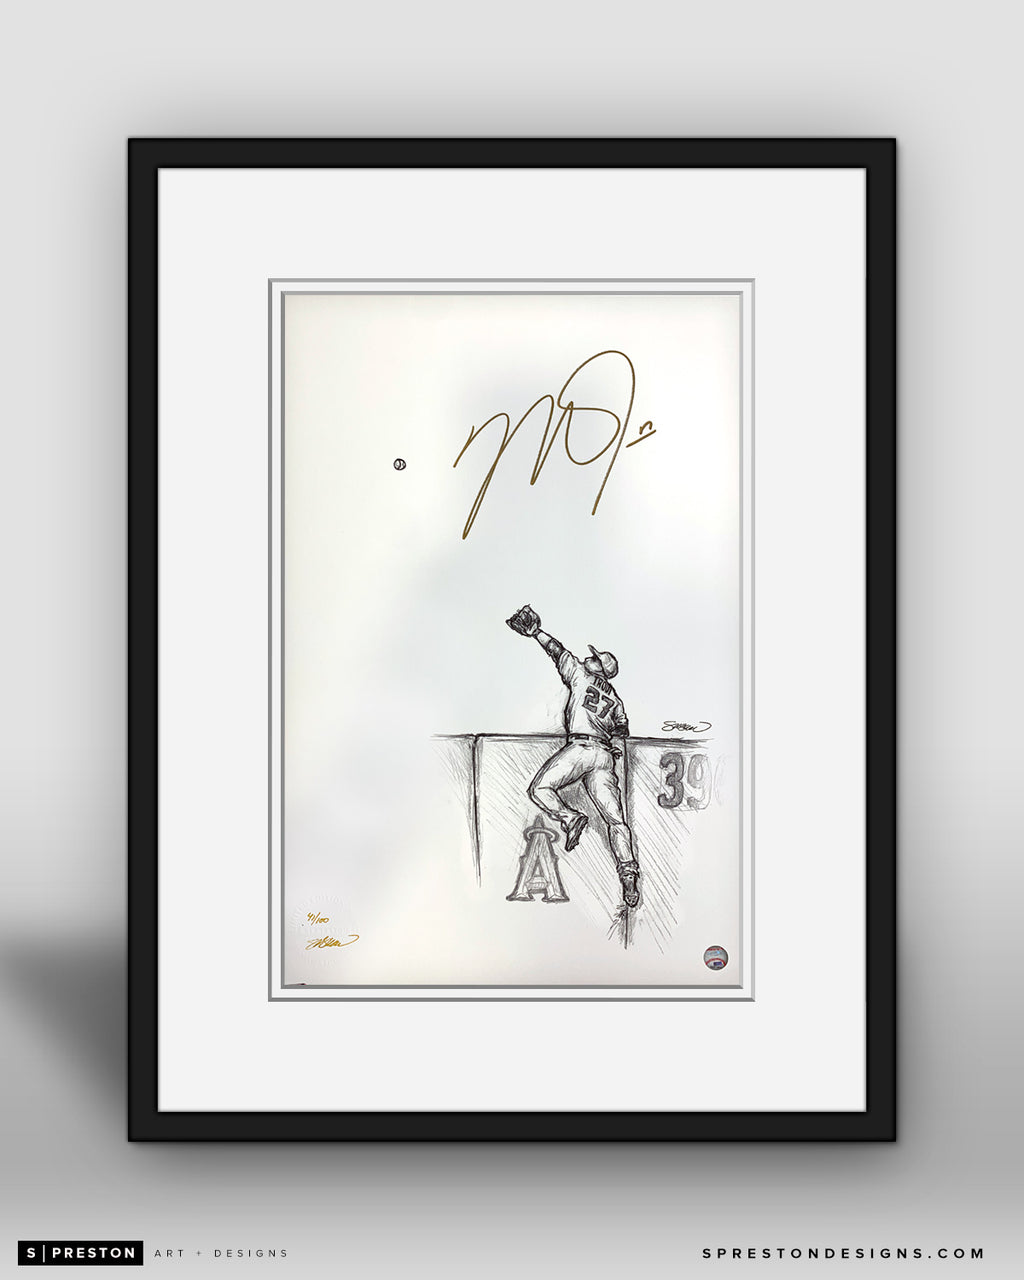 Reeling In - Mike Trout Autographed - Framed Print